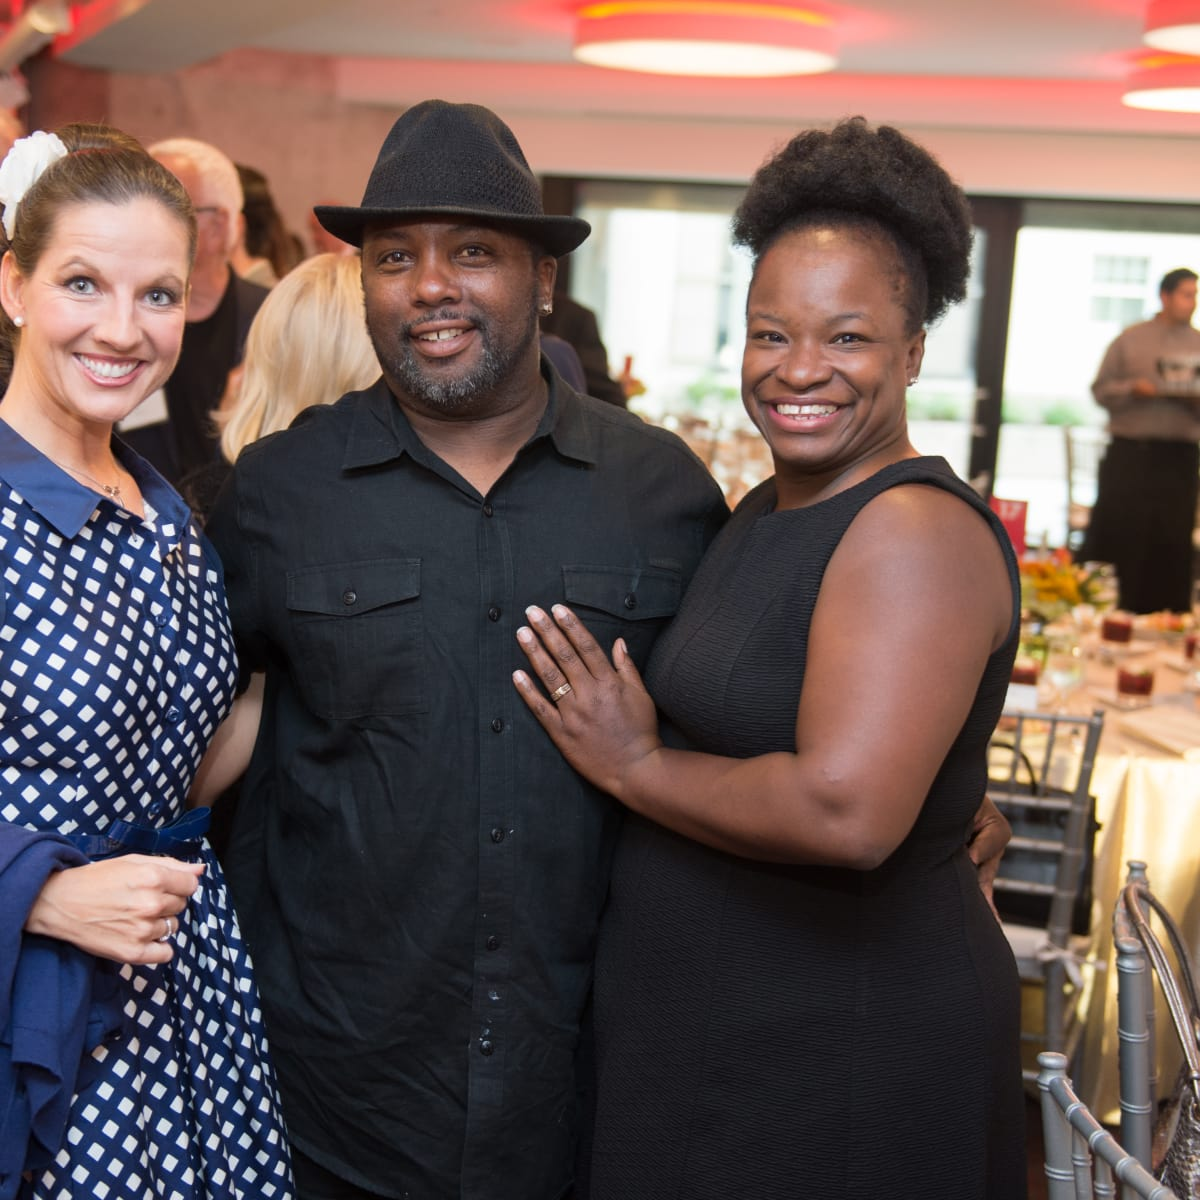 Houston, Alley Theatre opening night, October 2015, Sarah Beth Maddox, Evel Maddox, Gloria Maddox Sarah Beth Maddox, Evel Maddox, Gloria Maddox